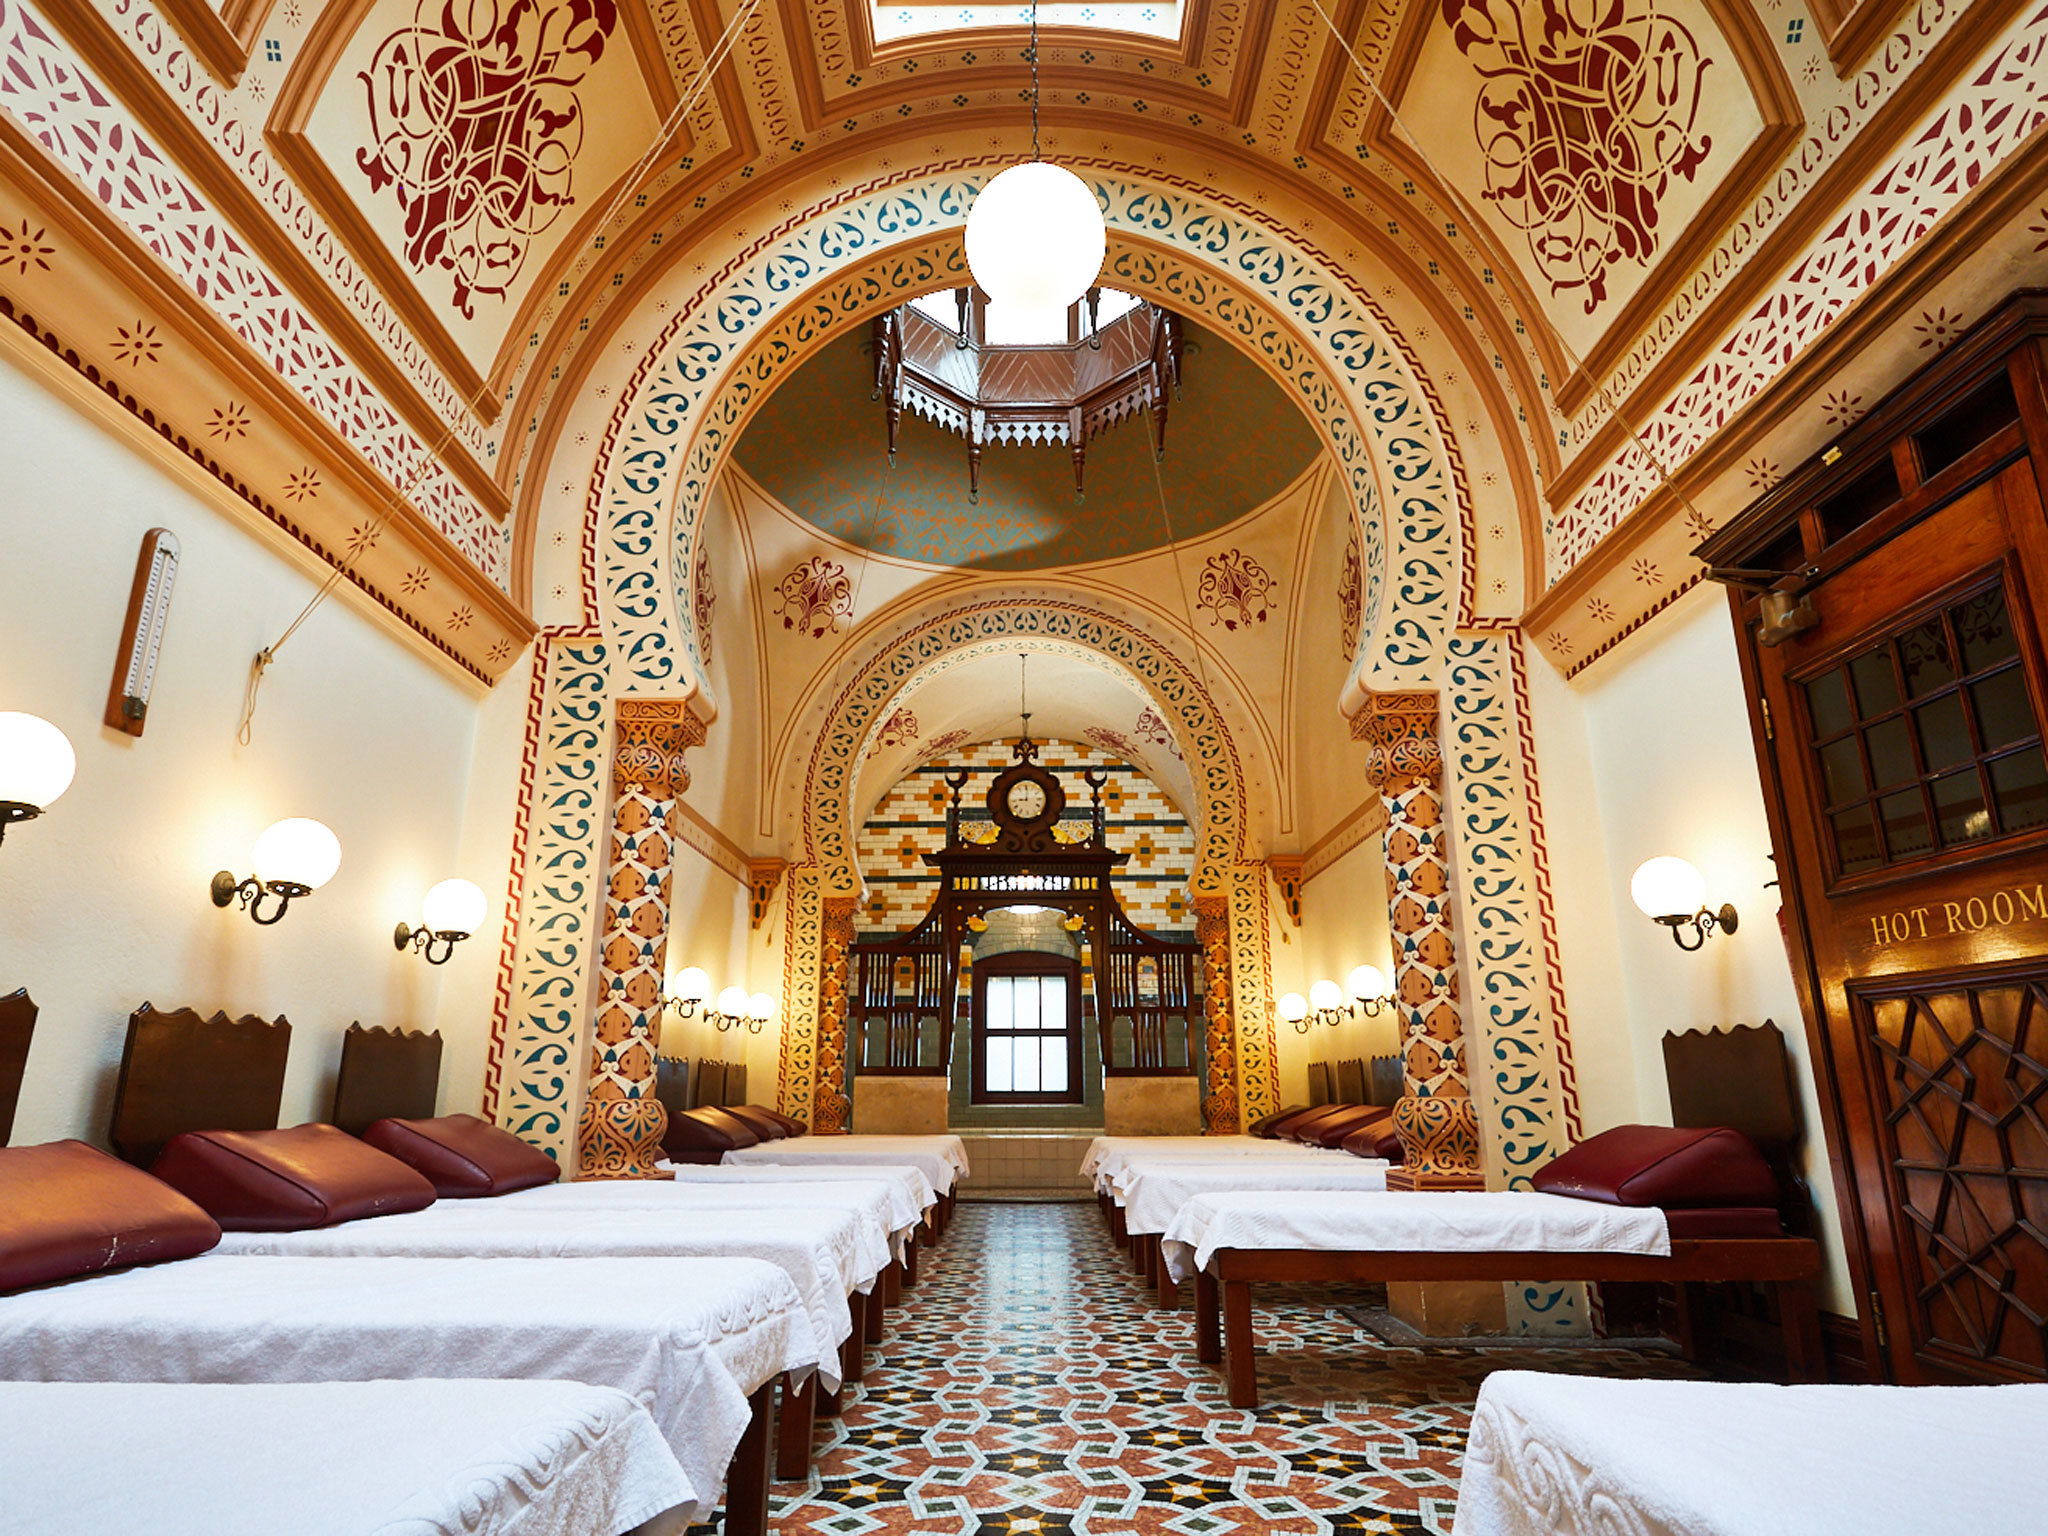 Harrogate Turkish baths - TTD Harrogate EITW